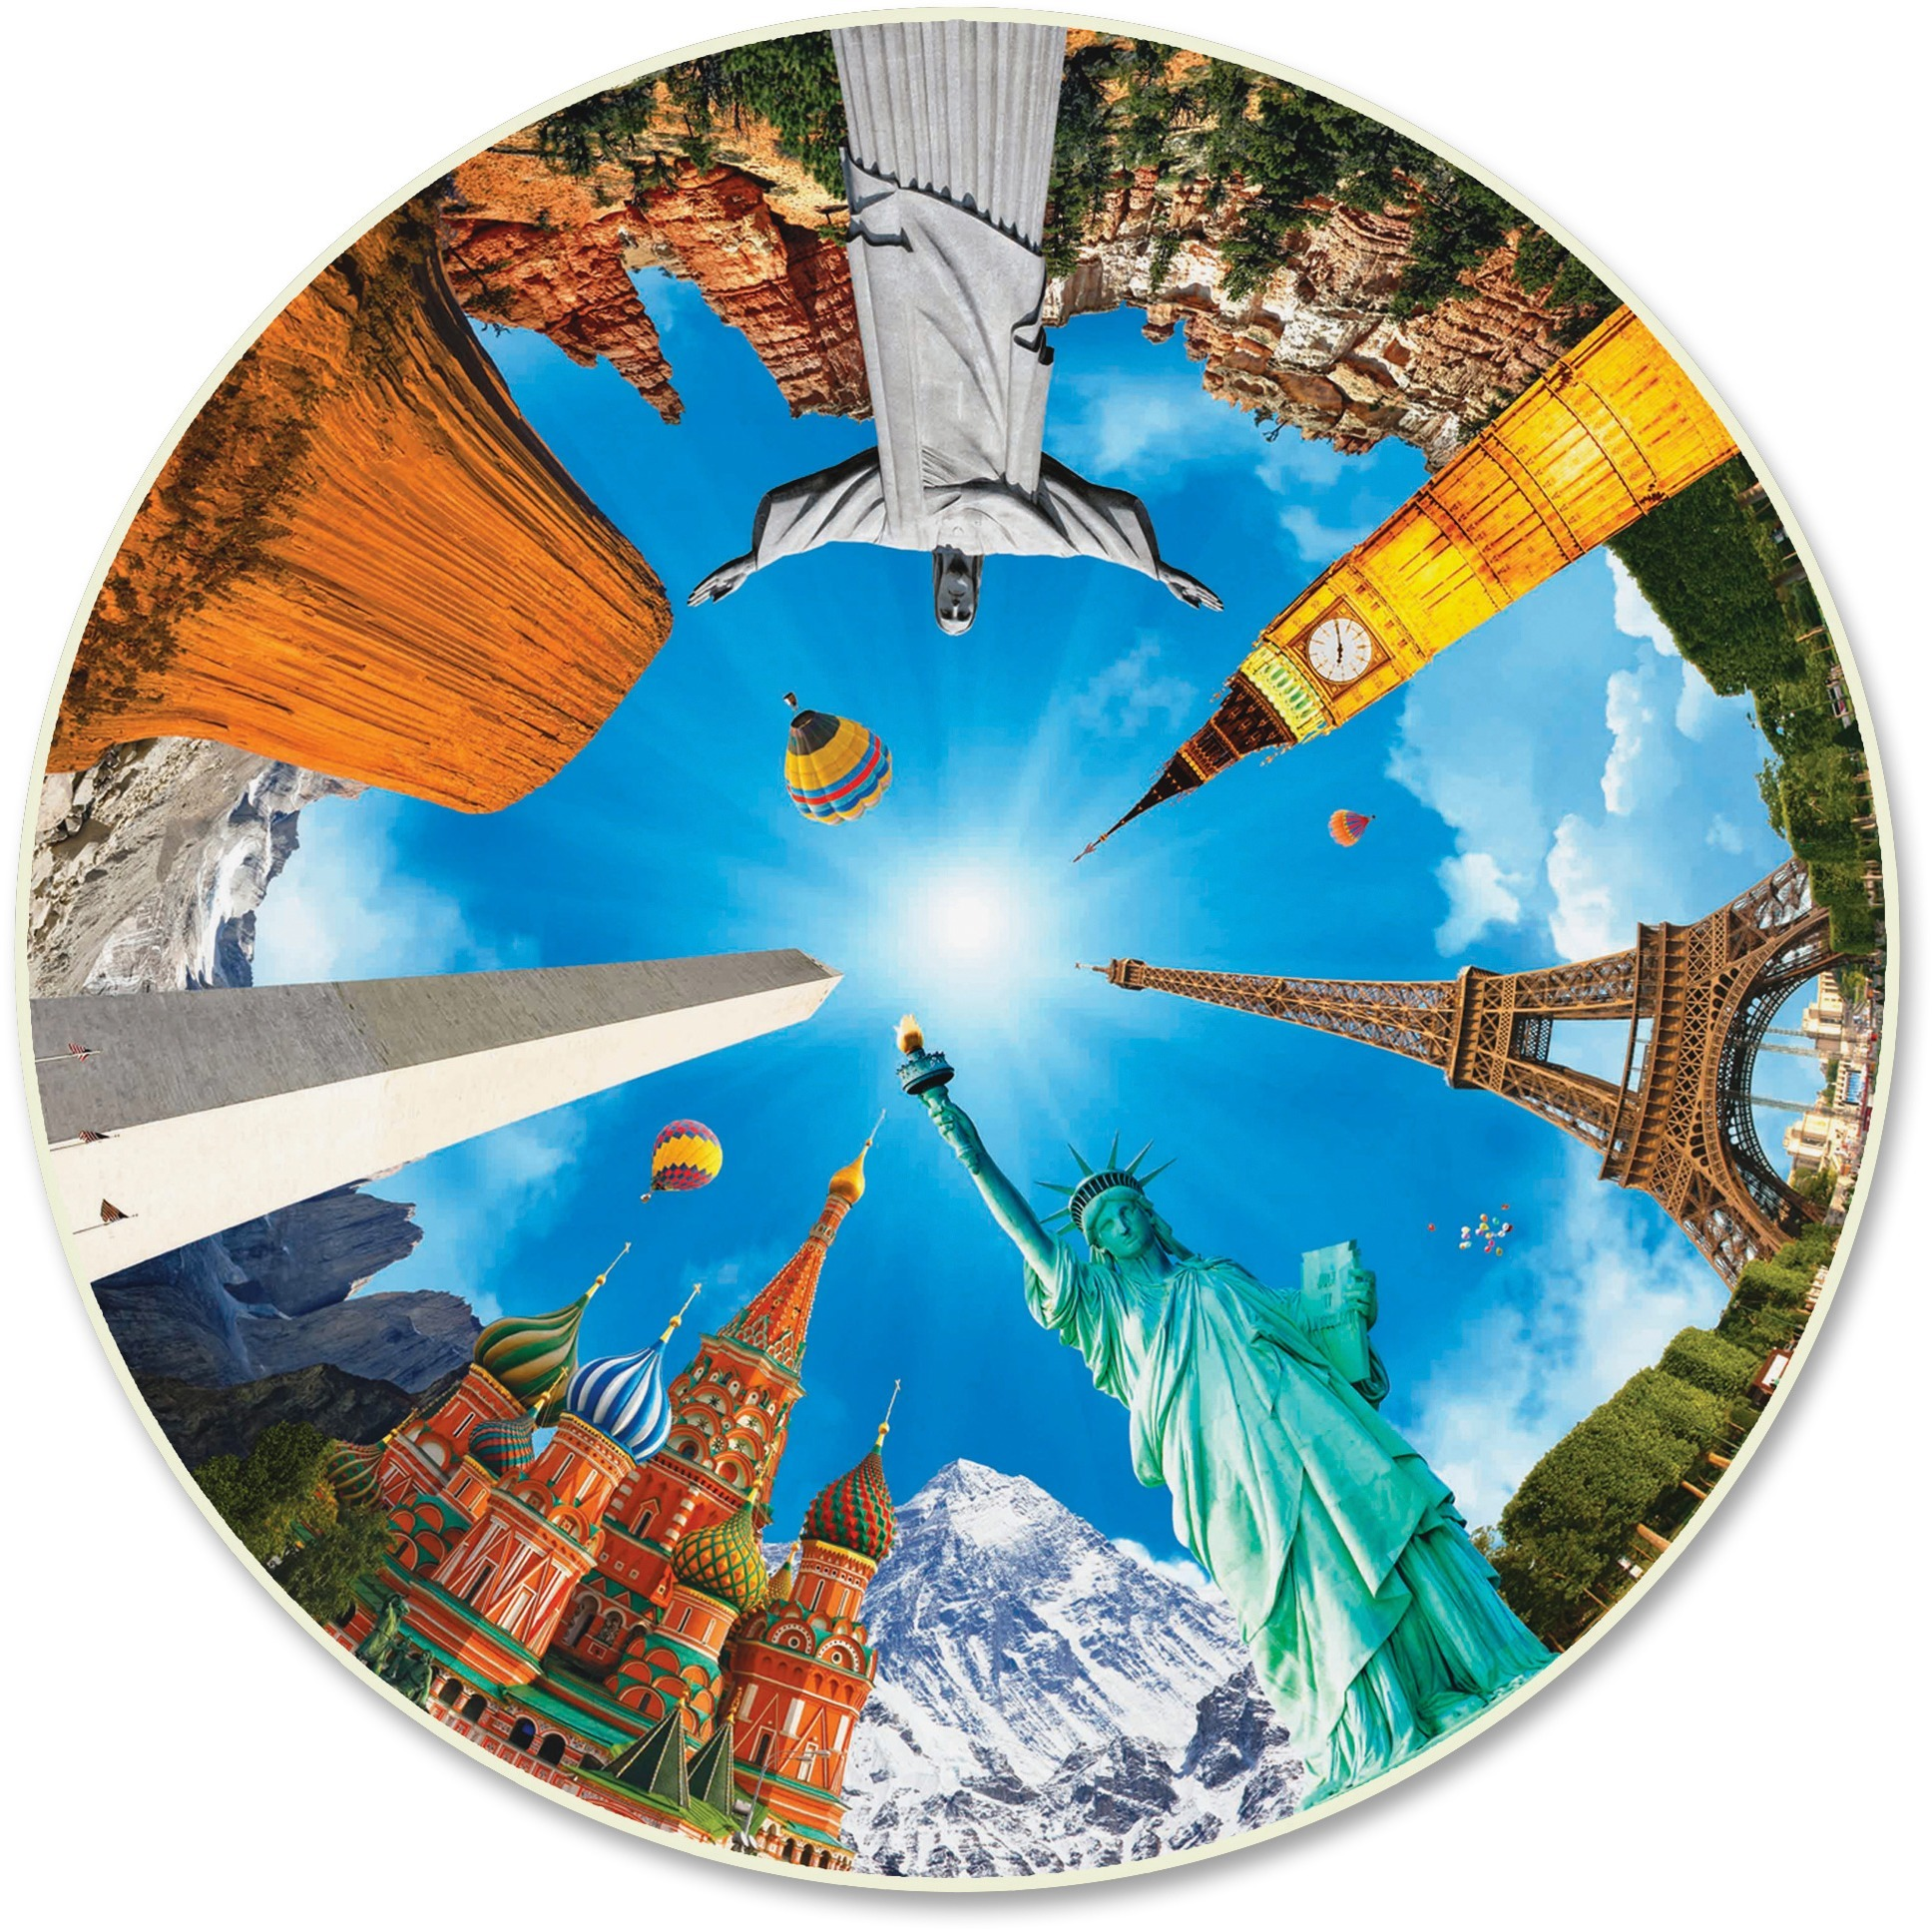 A Broader View's Round Table - Legendary Landmarks (500-piece)